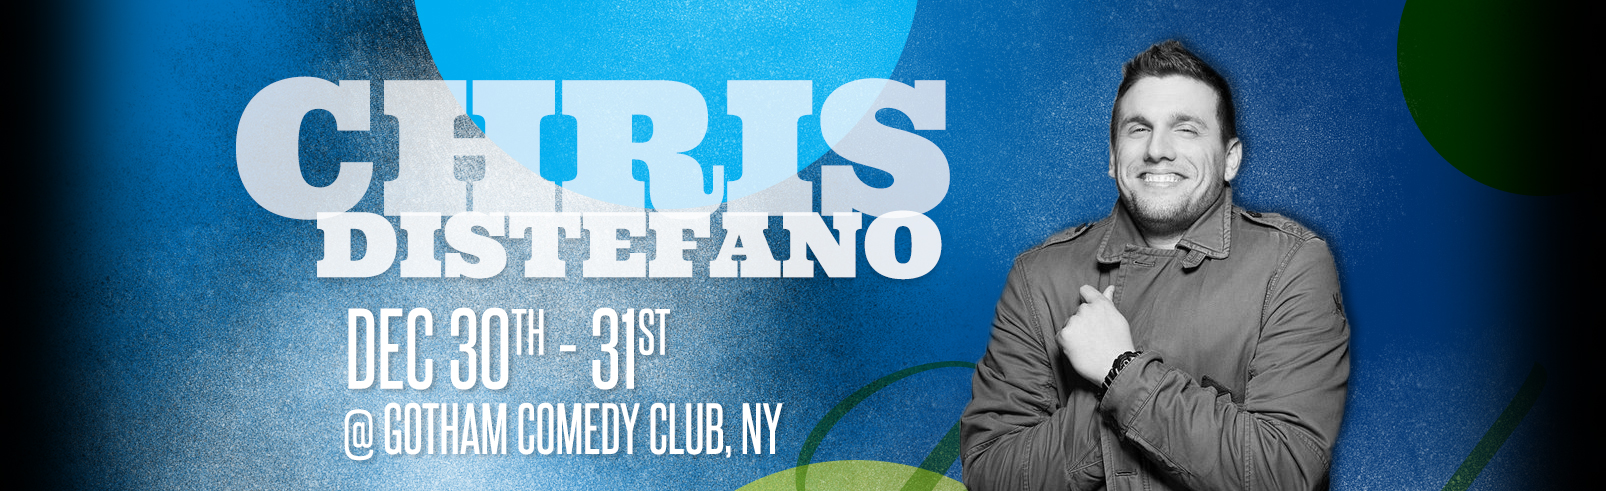 Chris DiStefano @ Gotham Comedy Club